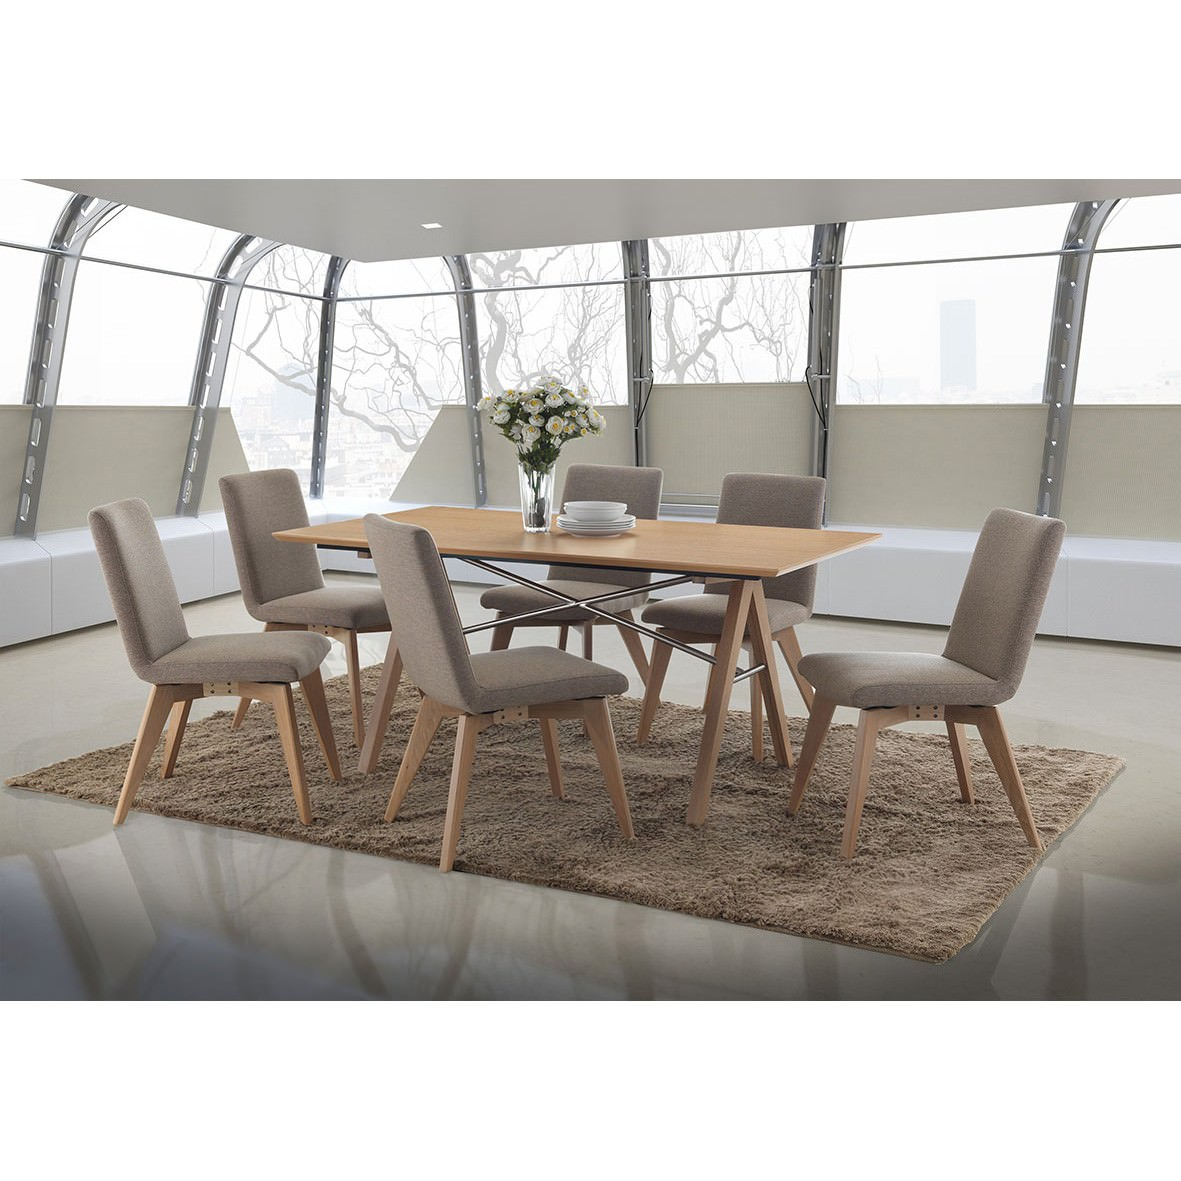 Royce 7 Piece American Oak Timber Dining Table Set, 167cm, Brown Chairs